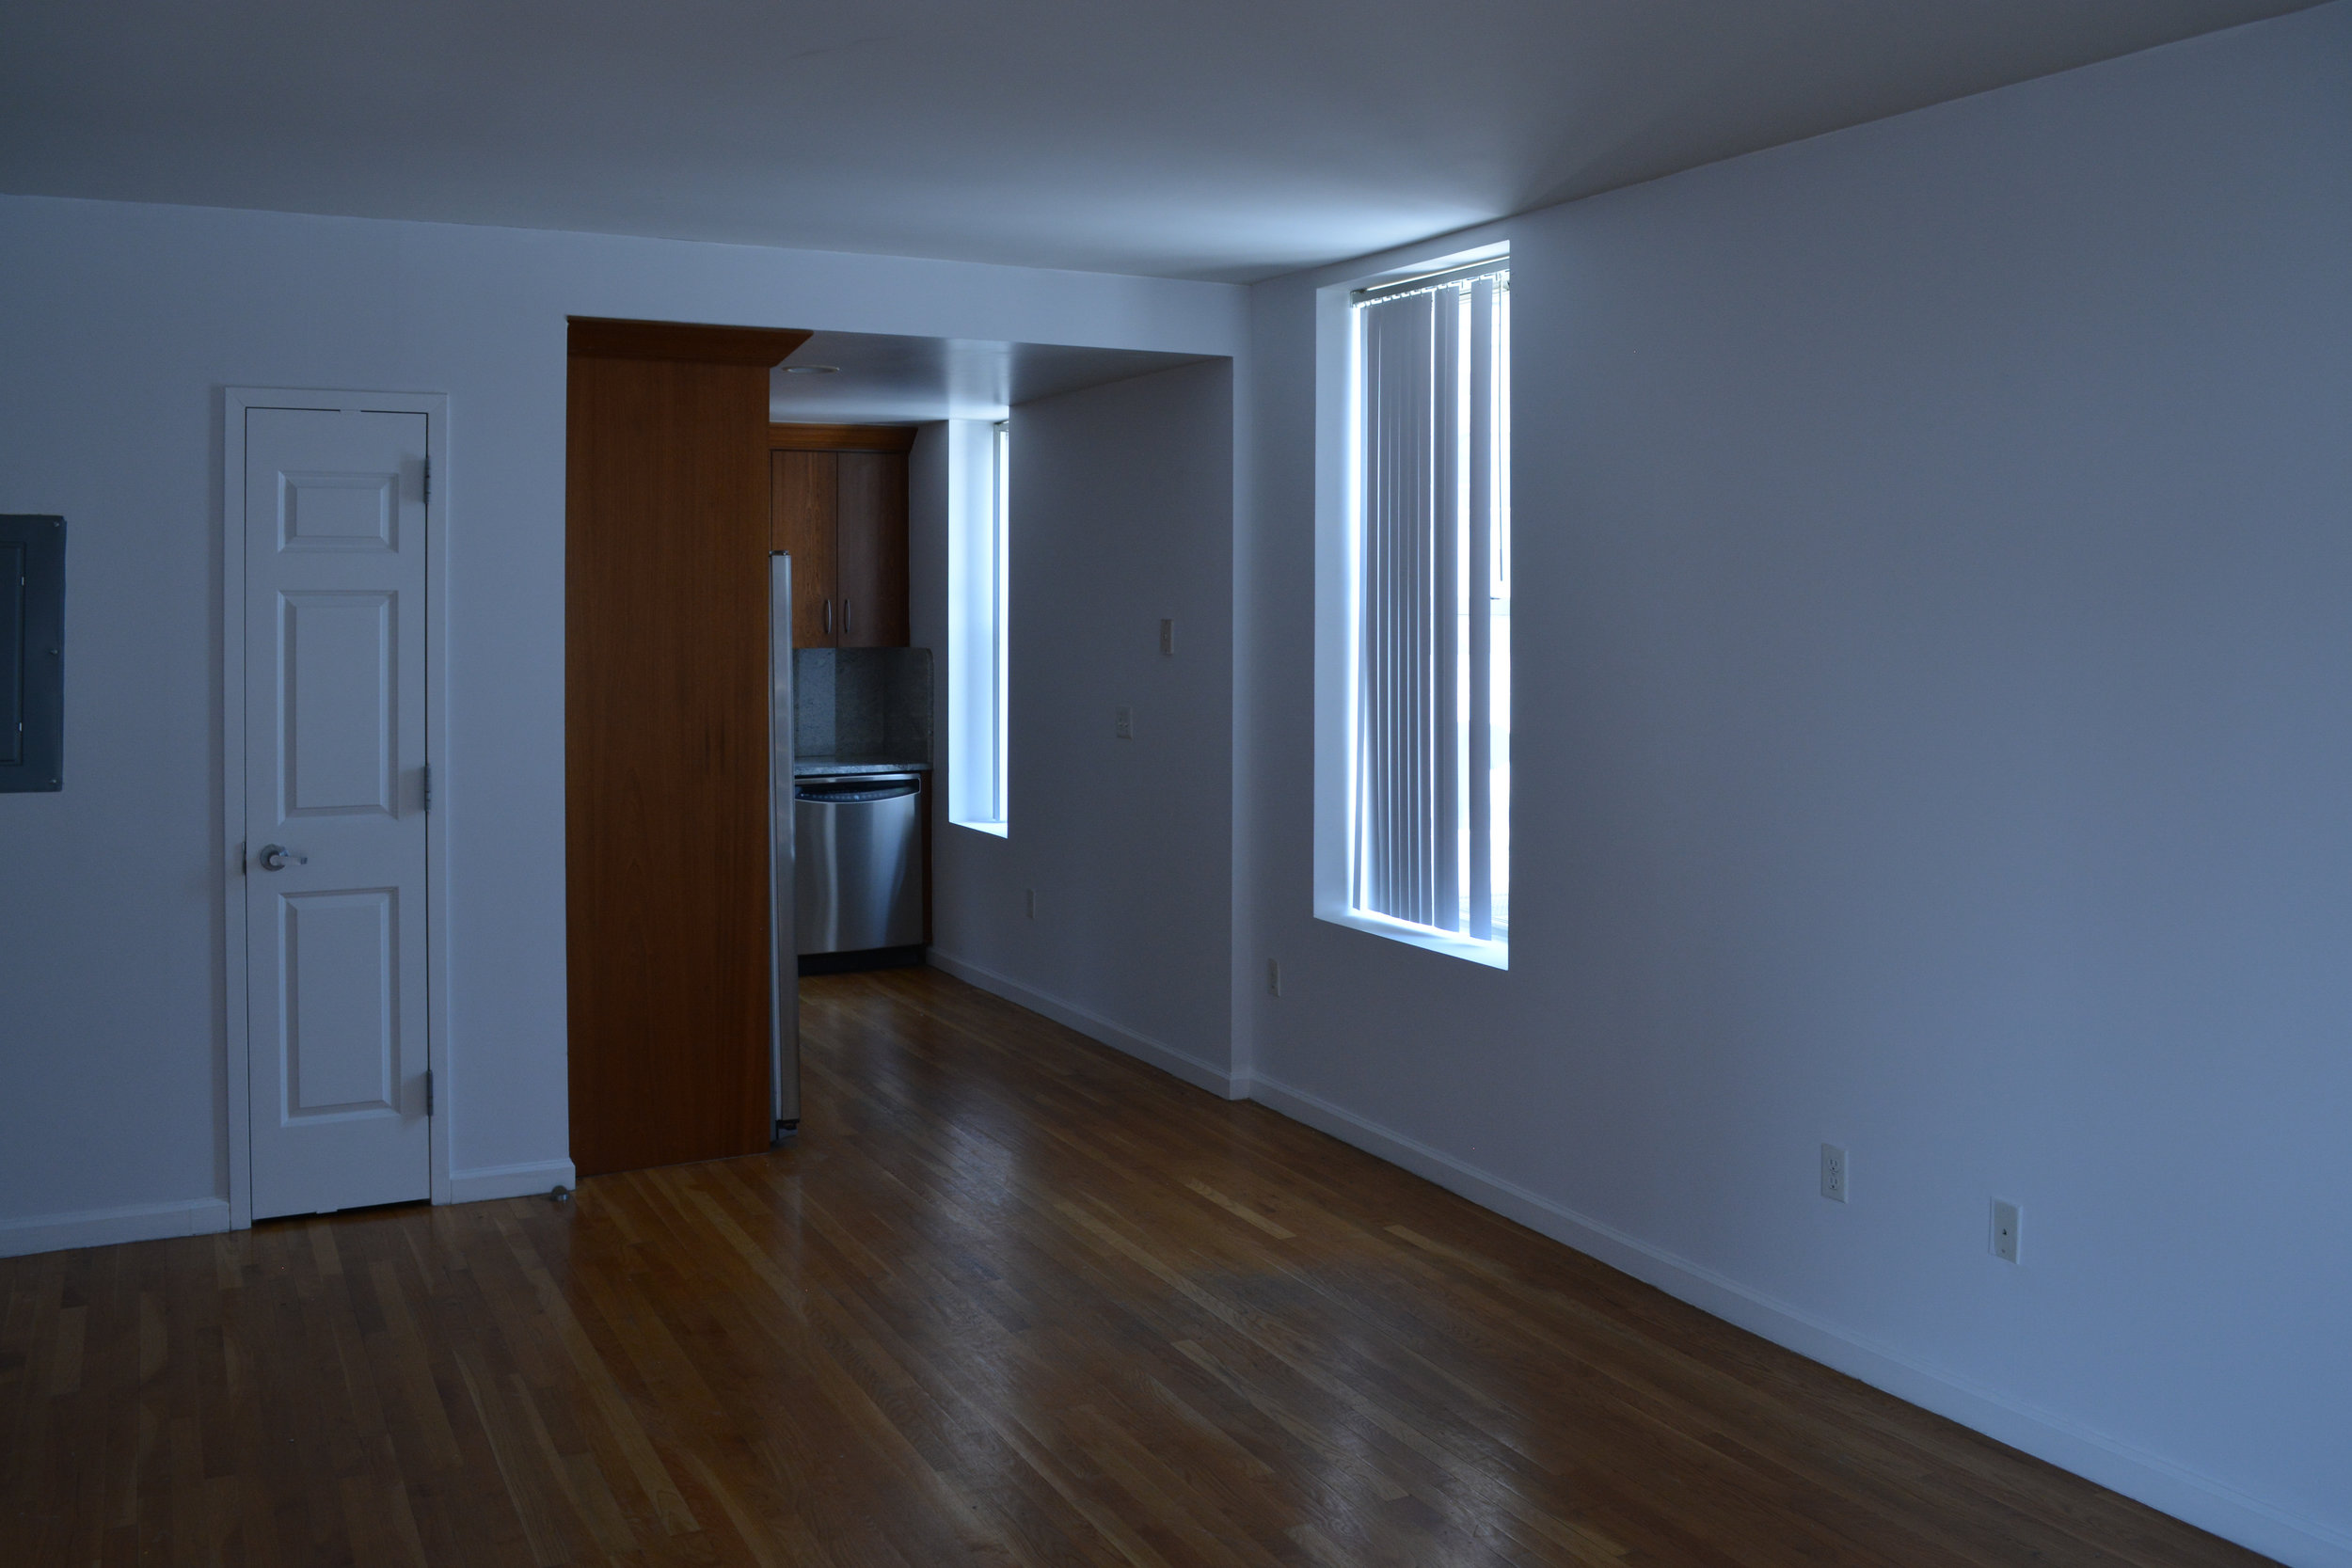 The kitchen flowed right directly into one very large open space, so I have to think about